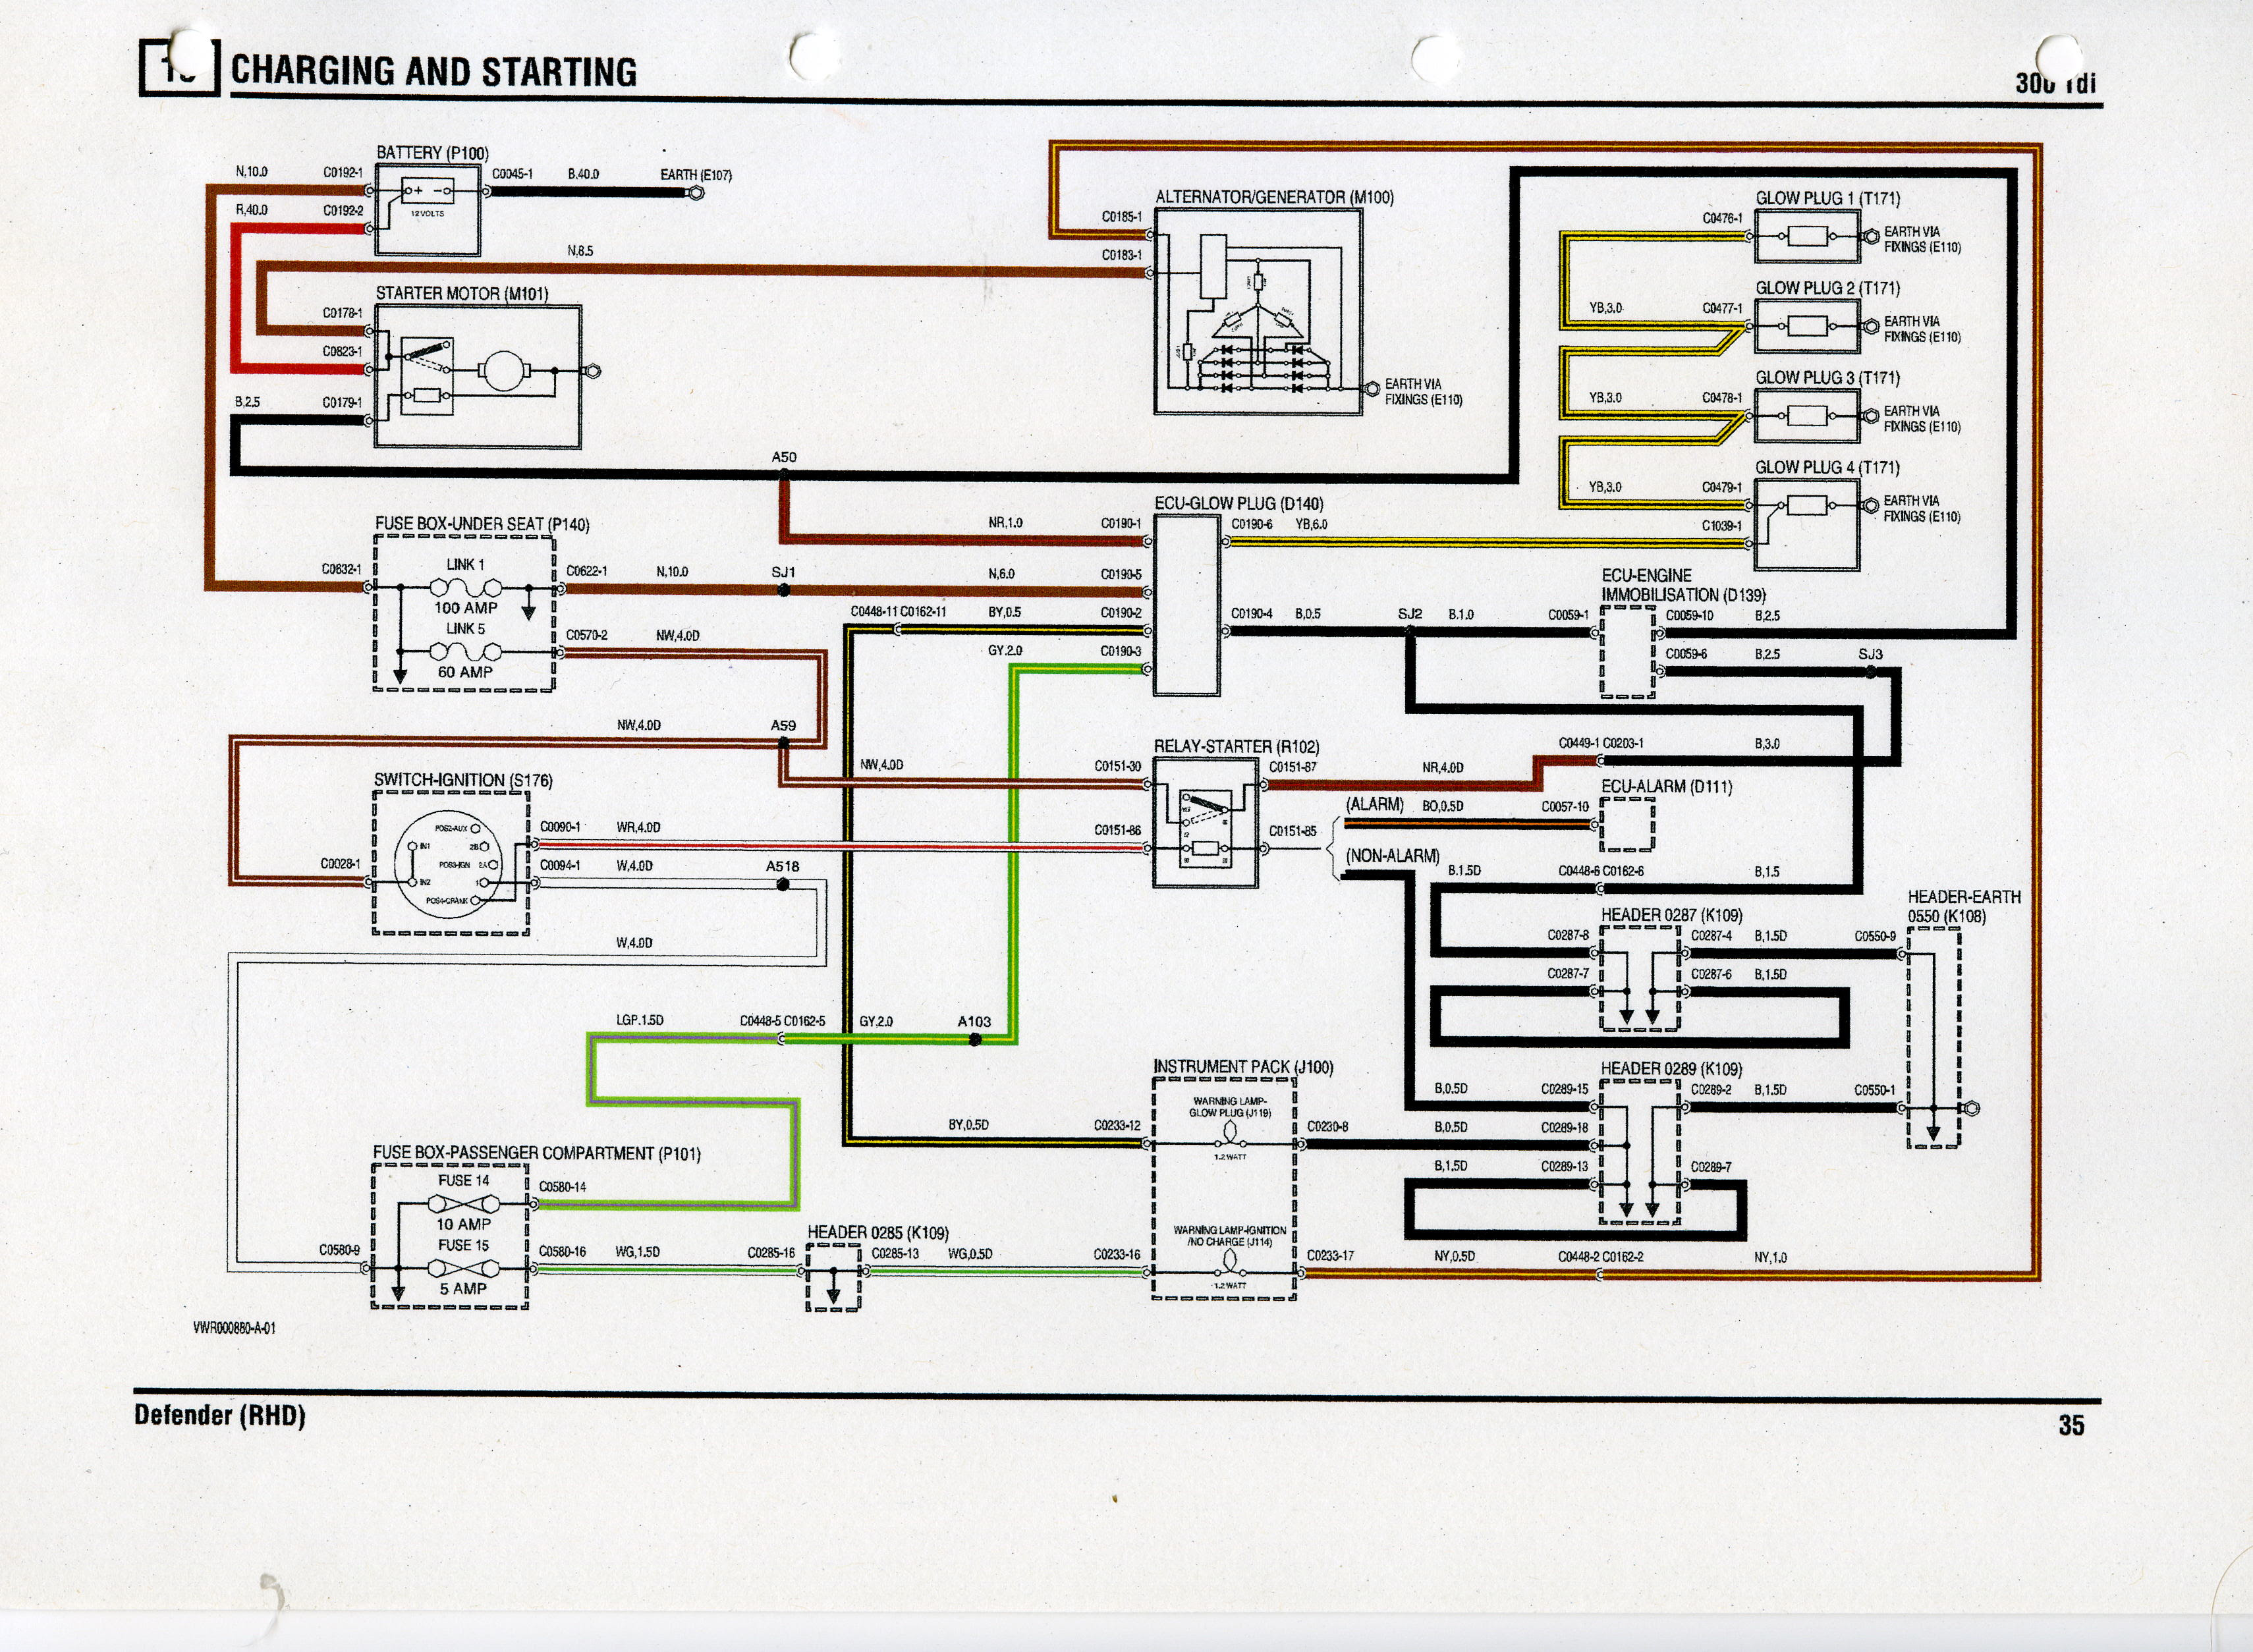 Diagram Land Rover Defender Ignition Wiring Diagram In Pdf And Cdr Files Format Free Download Wiring Diagram Flowchartdiagrams Gruppoguerrinidal1958 It